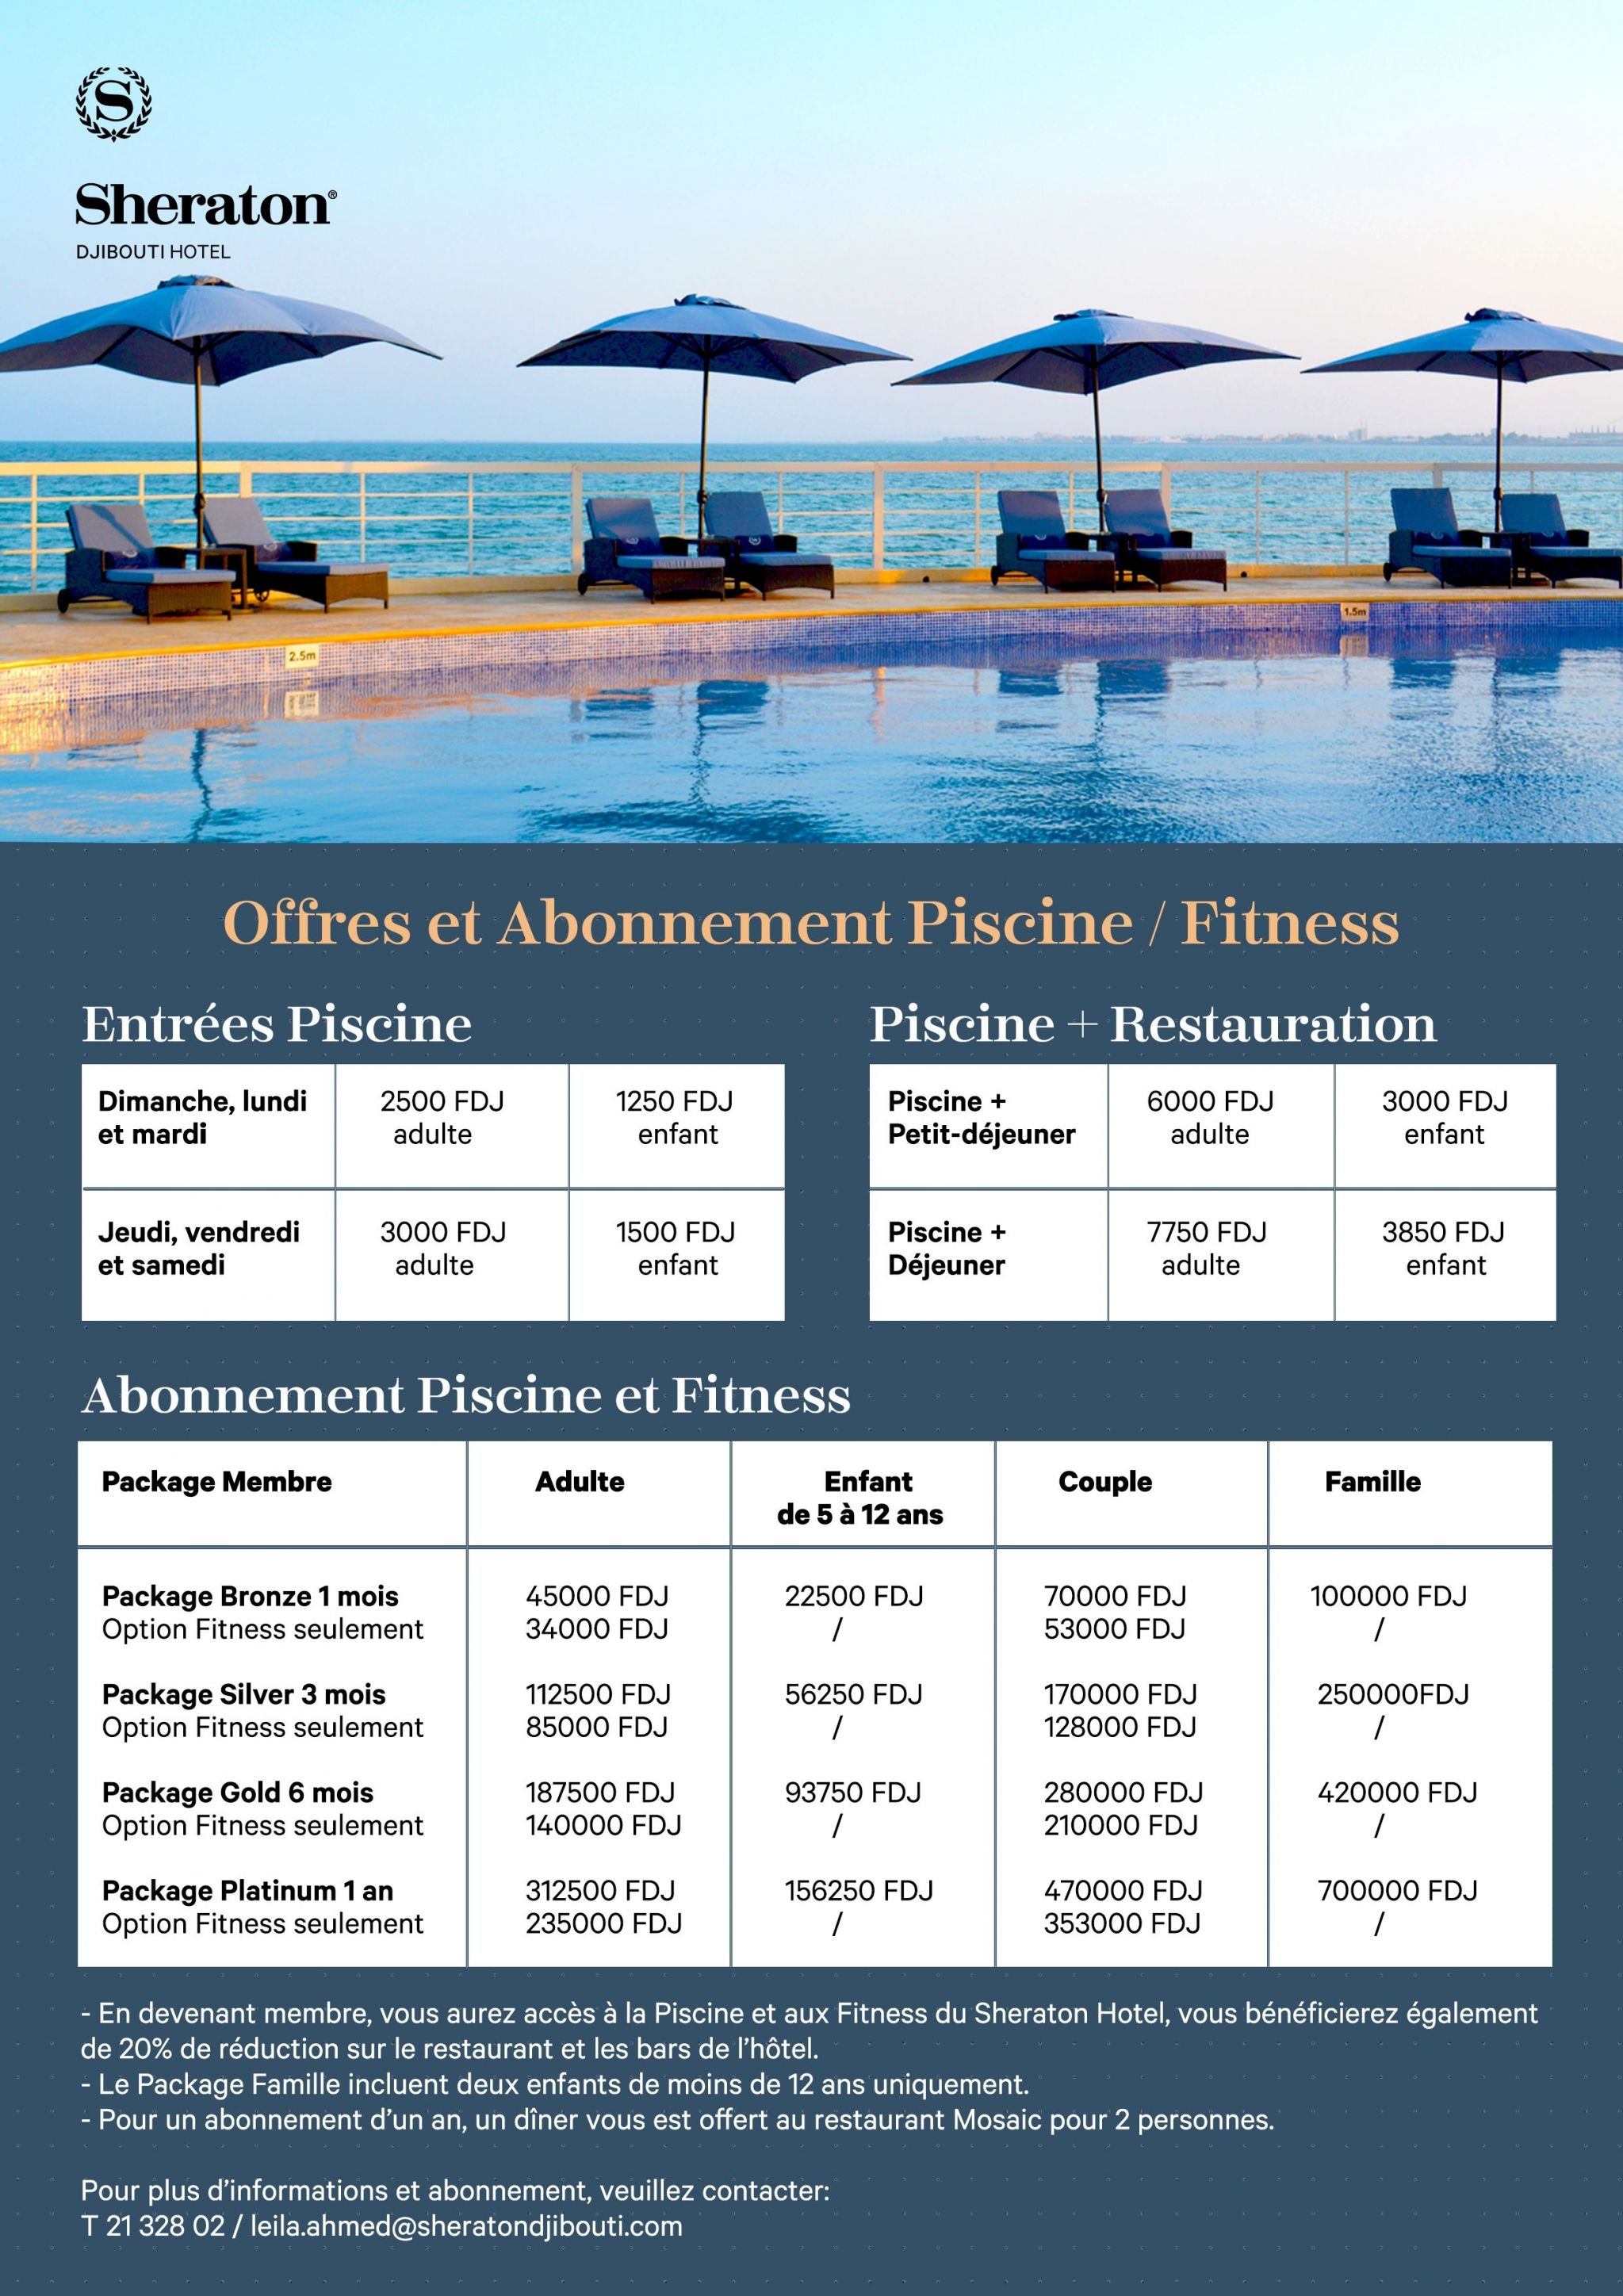 Sheraton Djibouti Hotel and Restaurant Events and Offers